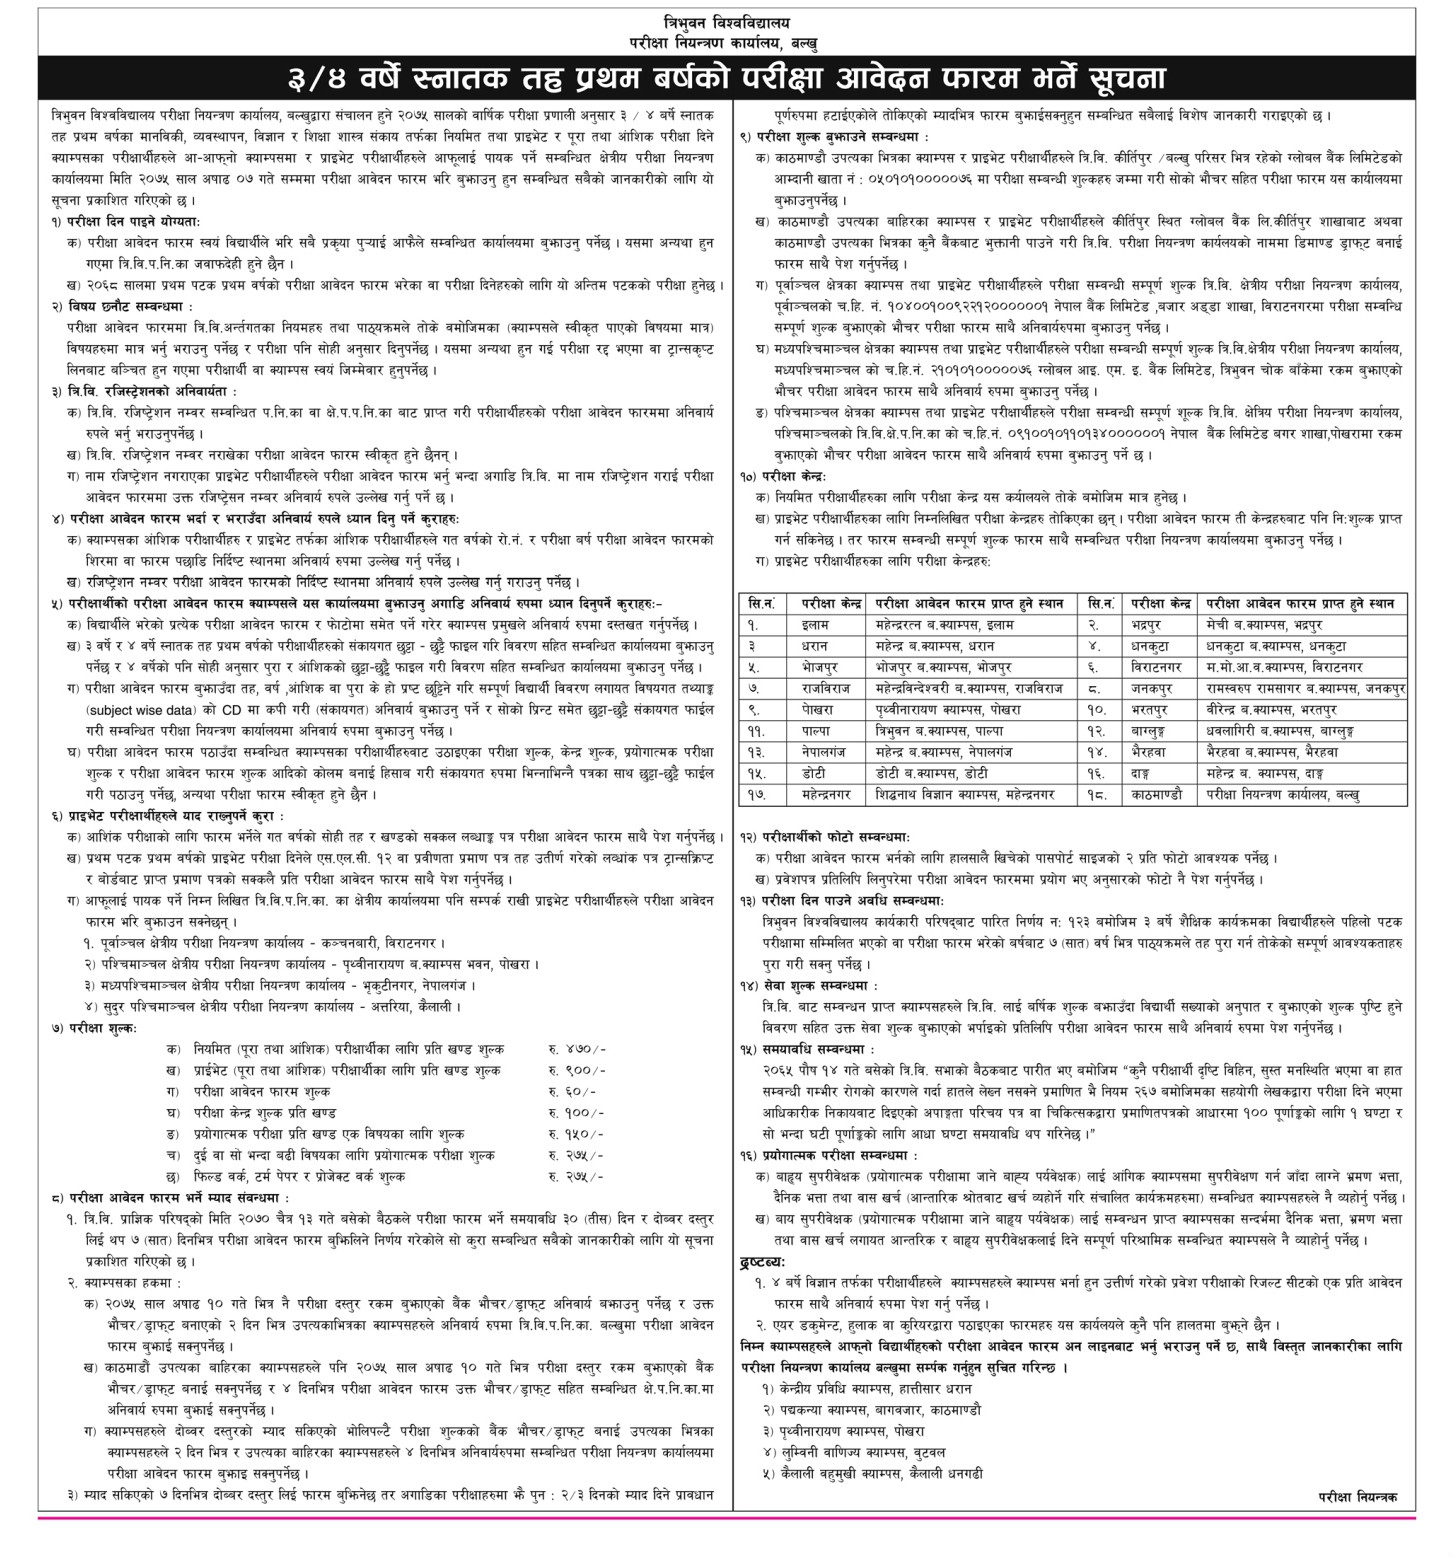 on job application form of rastriya banijya bank